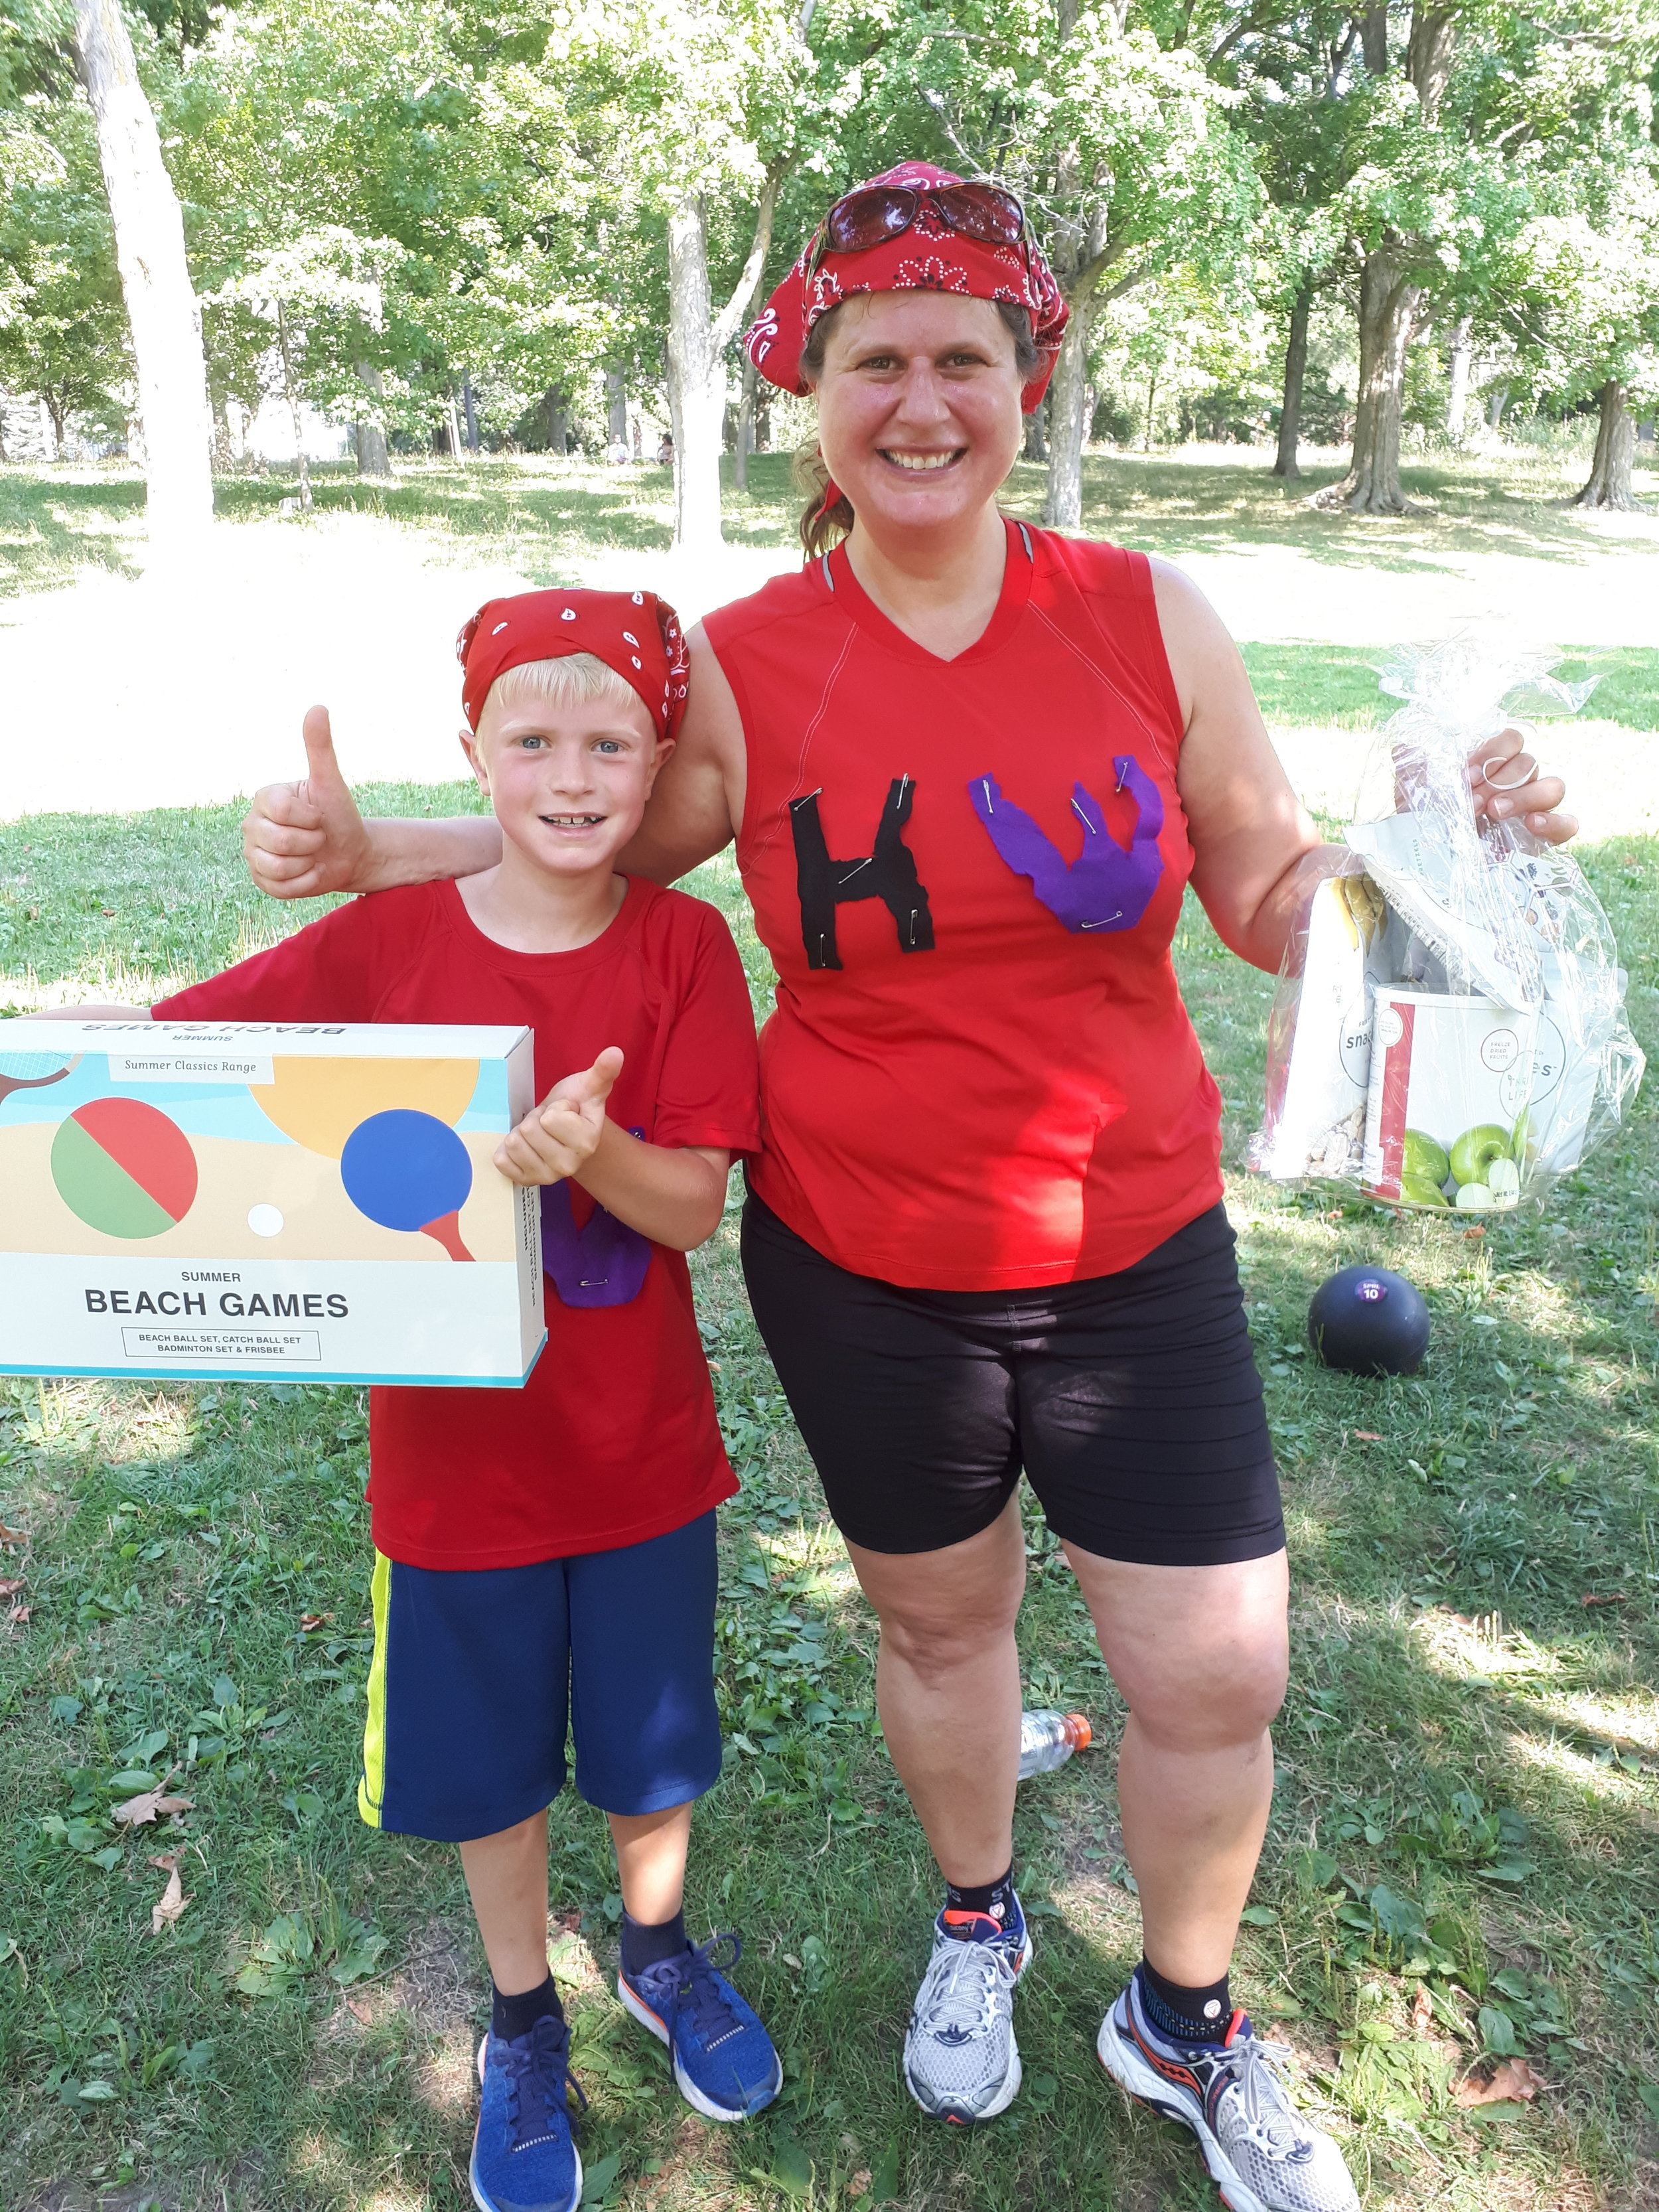 Shari and her son, Ben, who won first place at our Summer Loyobo FIT Games last August!